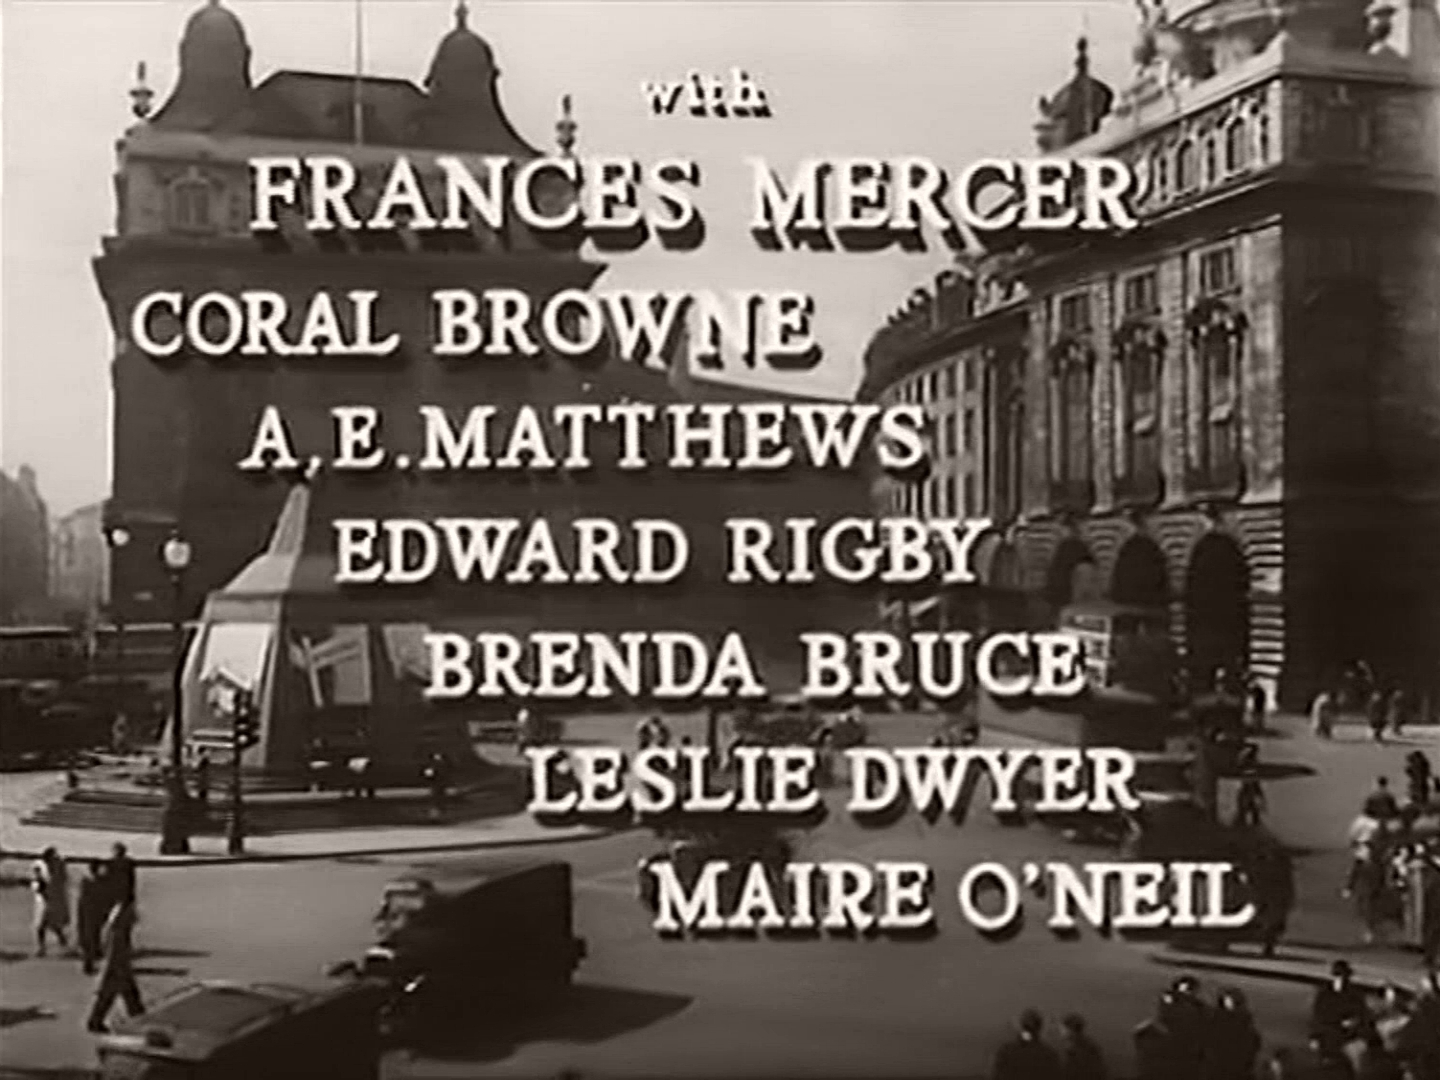 Main title from Piccadilly Incident (1946) (5). With Frances Mercer Coral Browne, A E Matthews, Edward Rigby, Brenda Bruce, Leslie Dwyer